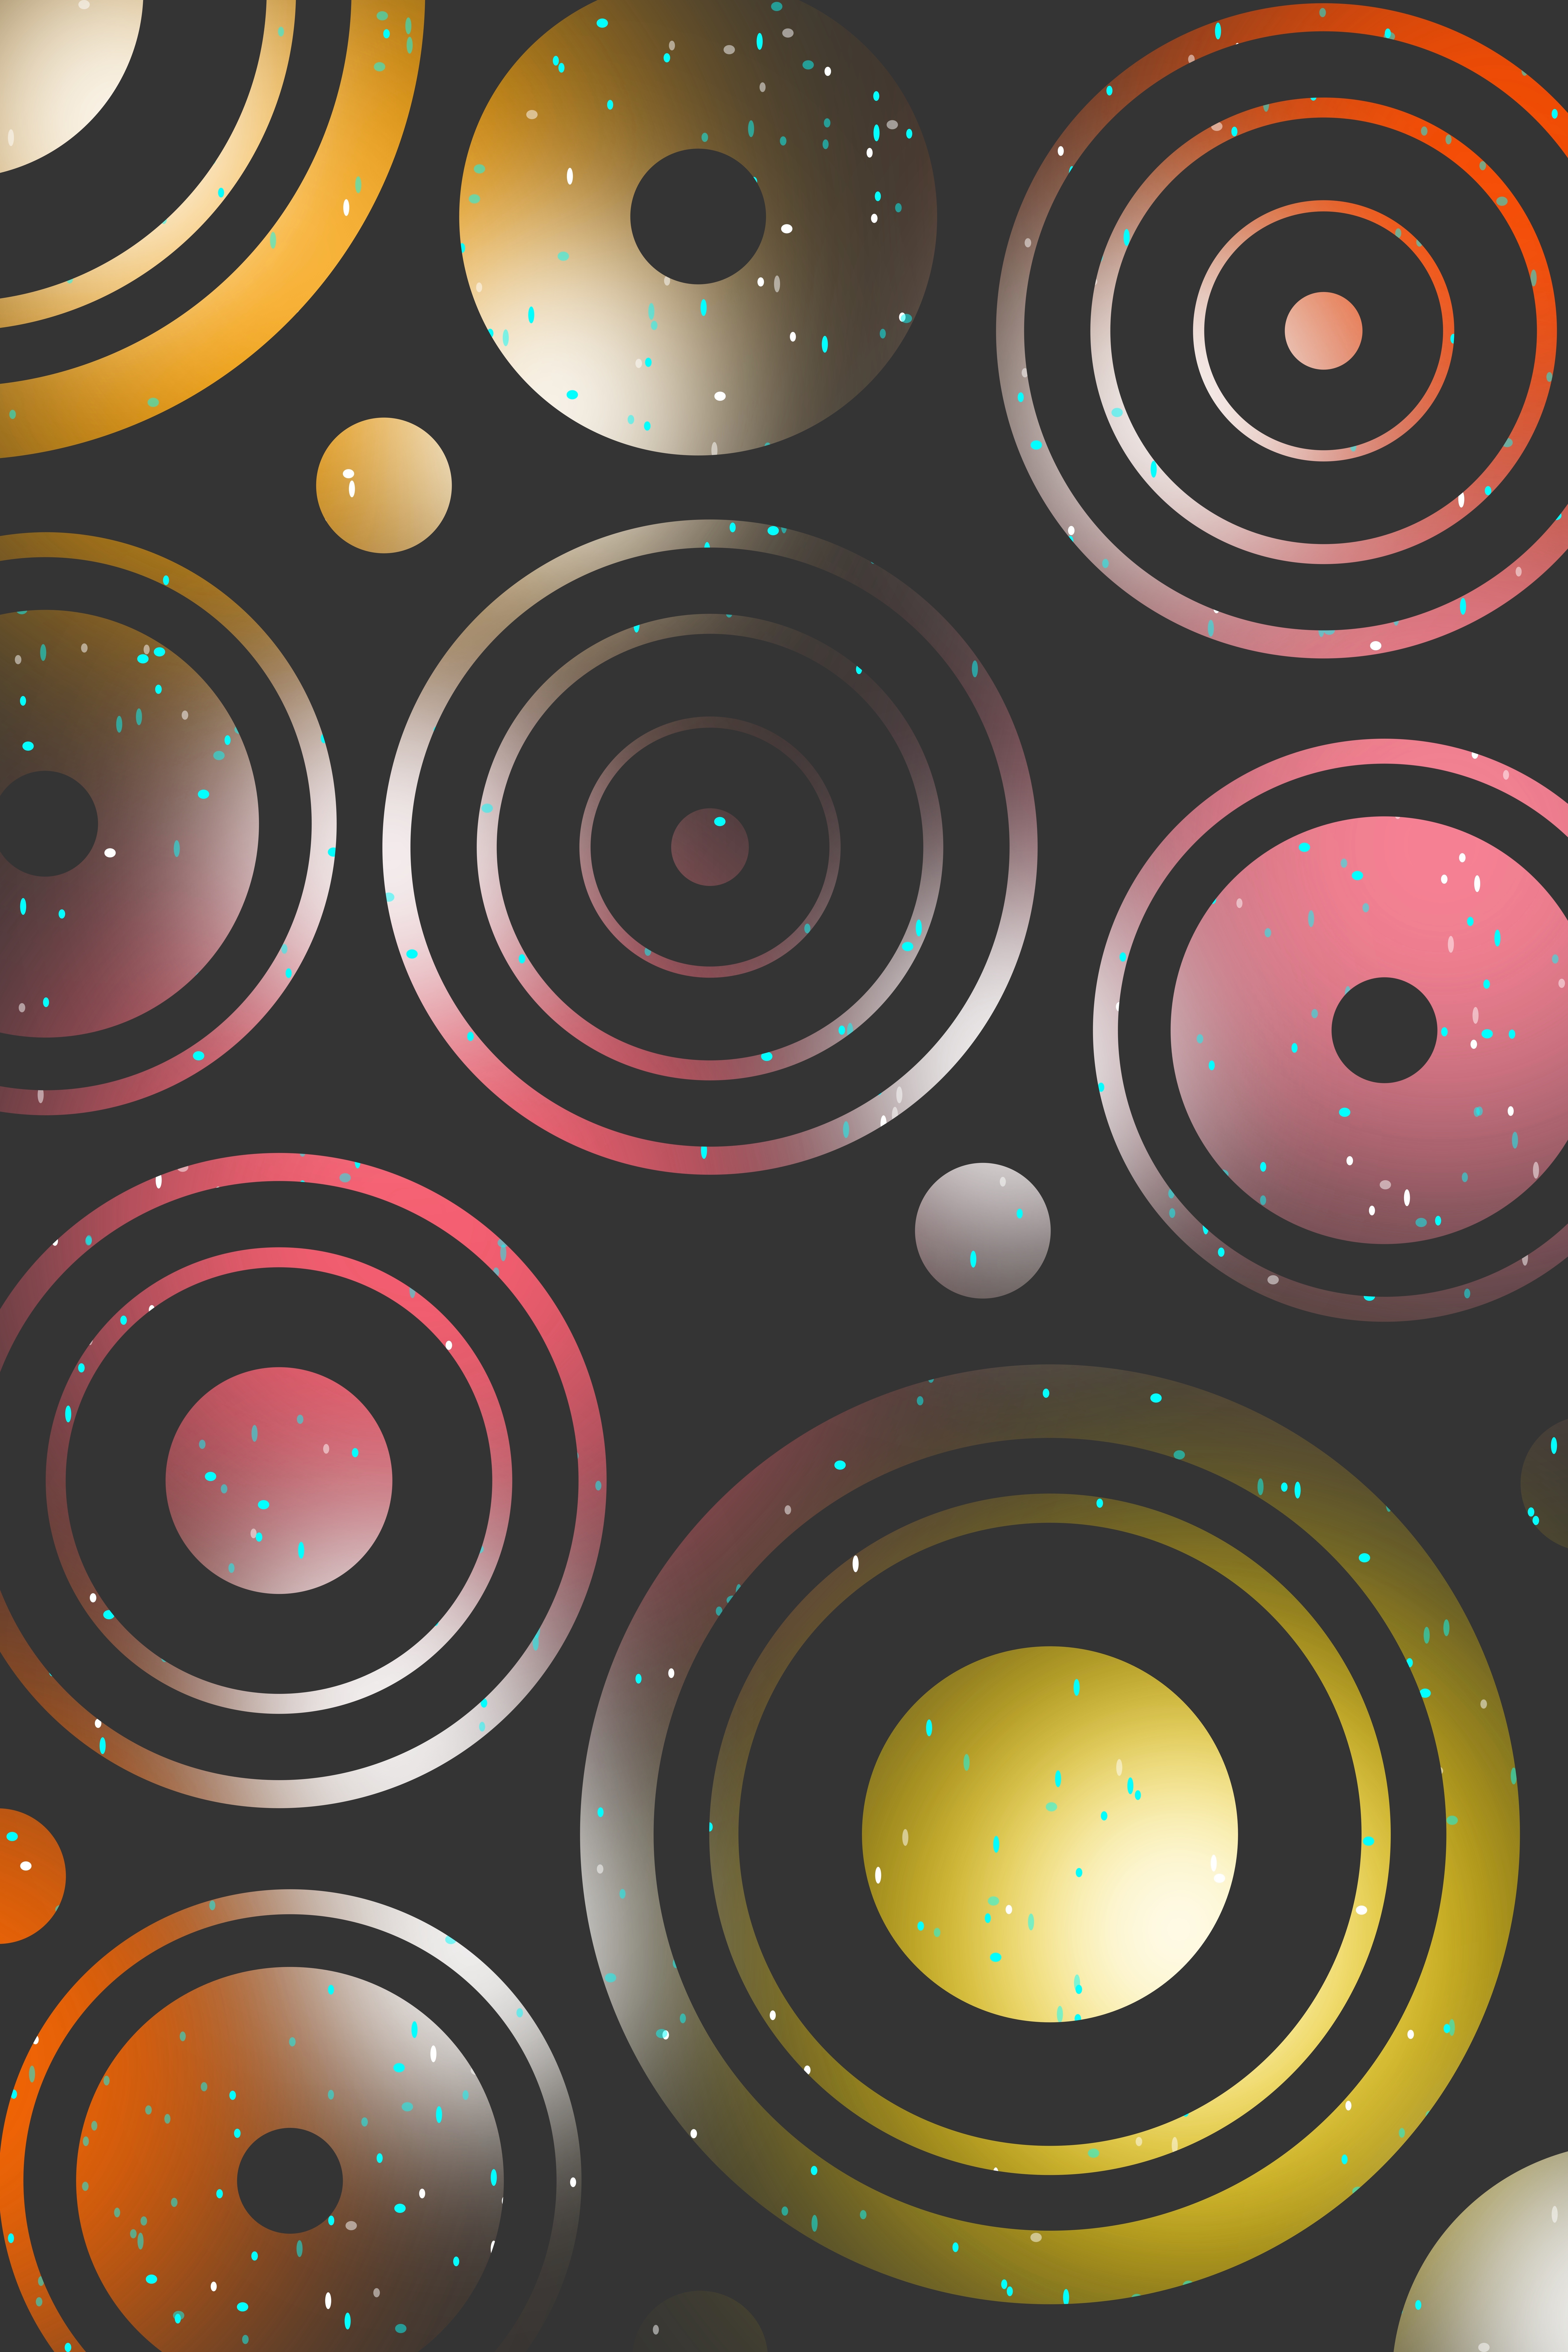 131757 download wallpaper Textures, Texture, Circles, Points, Point, Gradient, Form, Rings screensavers and pictures for free